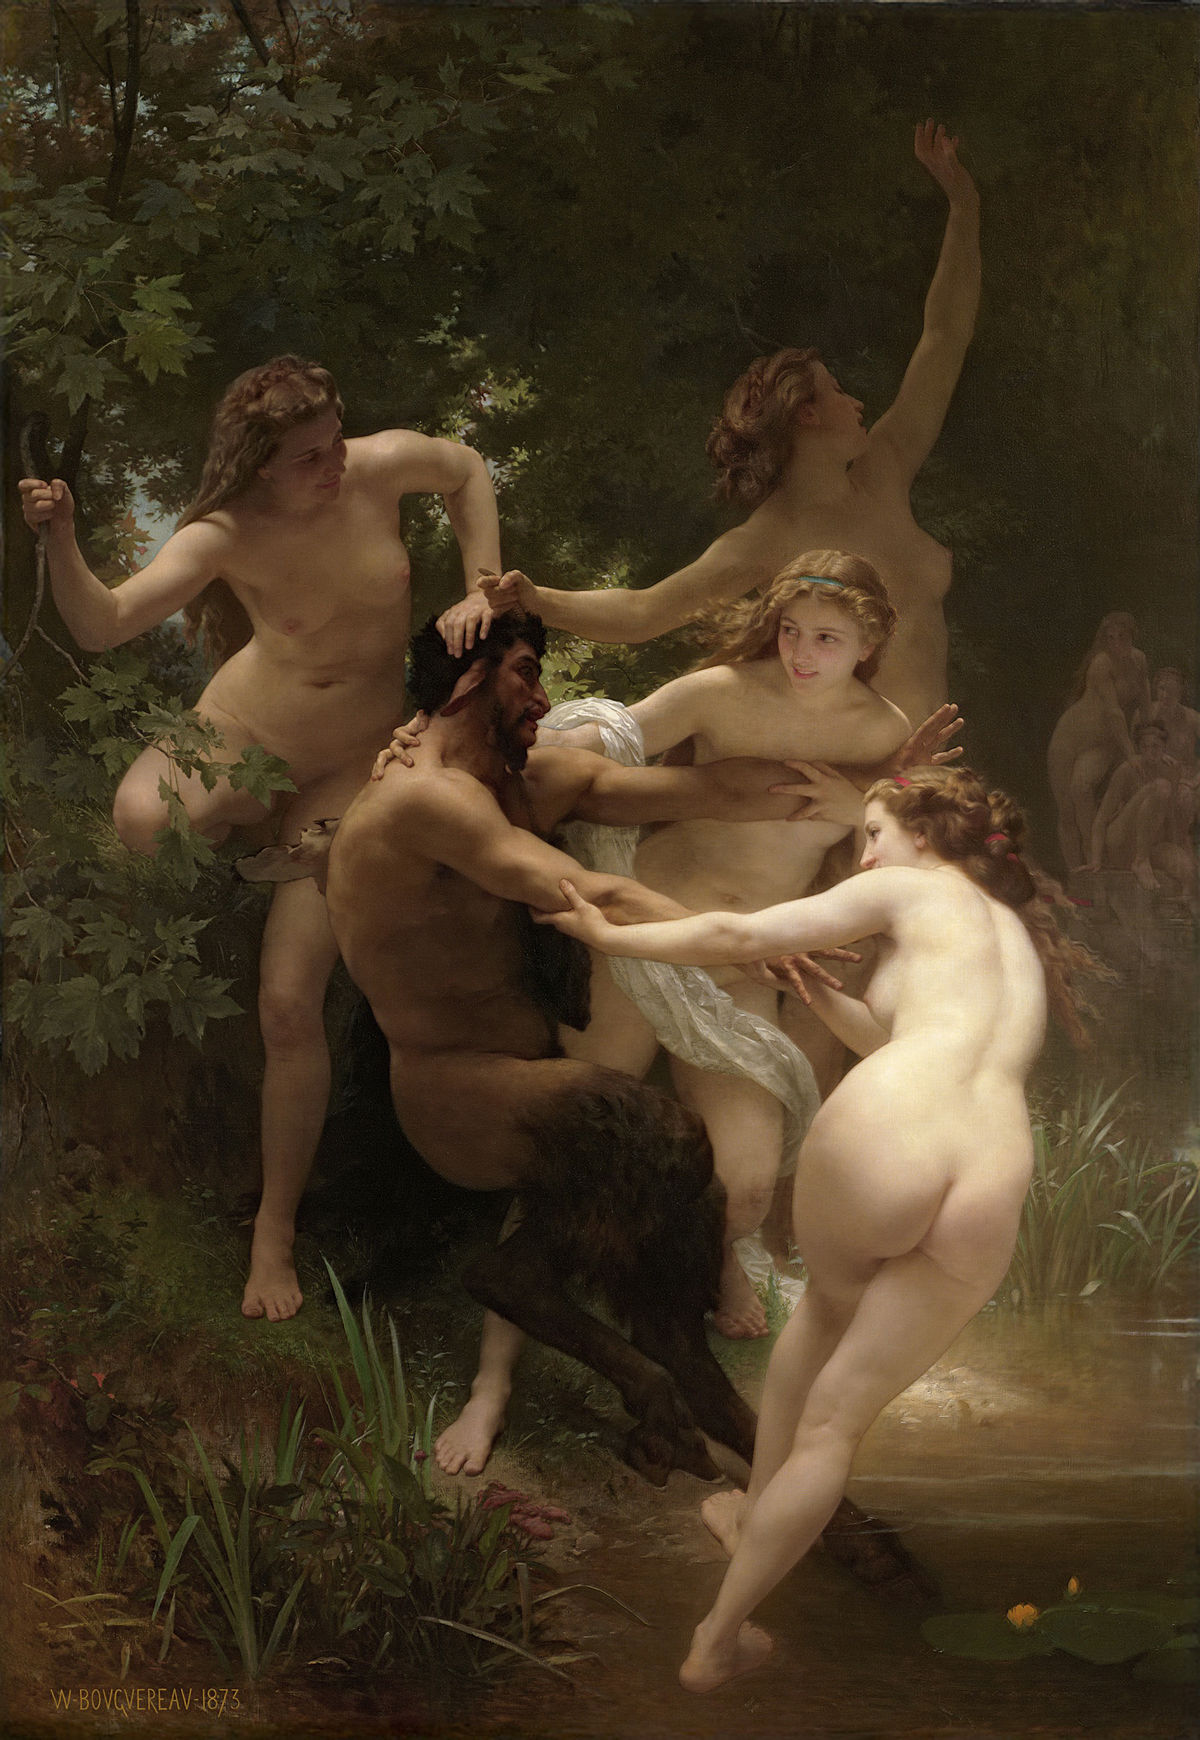 William-Adolphe Bouguereau (1825-1905) - Nymphs and Satyr (1873) HQ.jpg